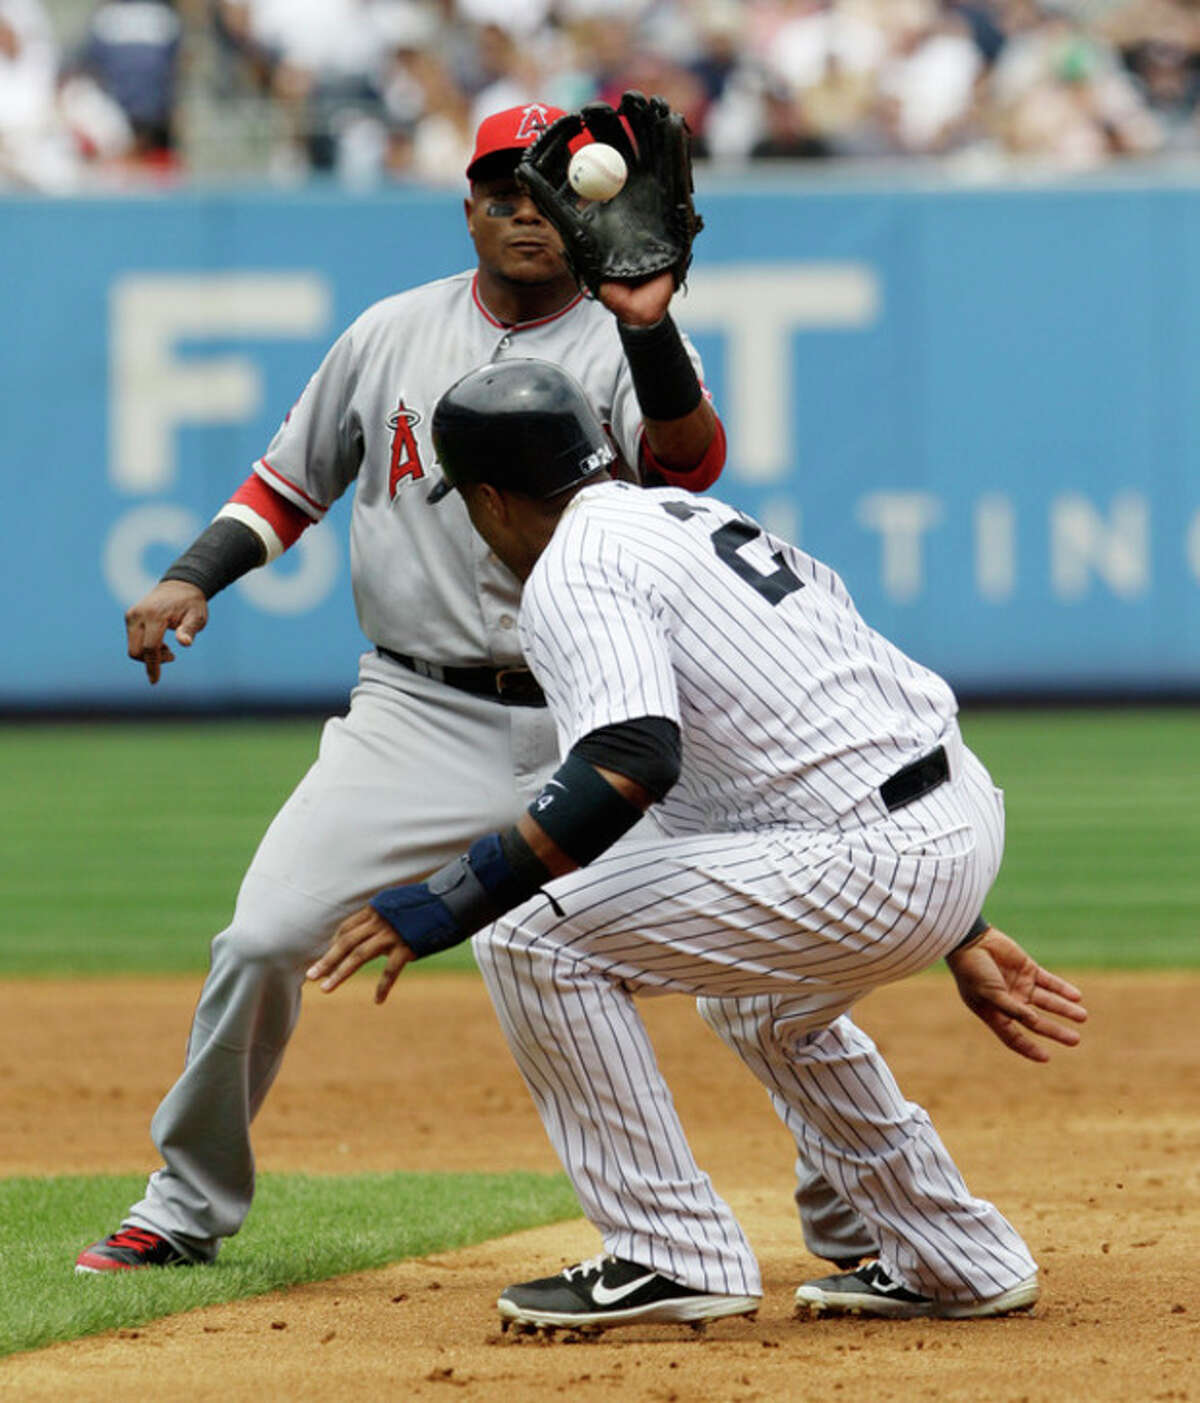 Los Angeles Angels shortstop Erick Aybar has the throw in his glove as he catches New York Yankees Robinson Cano in a third-inning rundown during their baseball game at Yankee Stadium in New York, Sunday, July 15, 2012. (AP Photo/Kathy Willens)